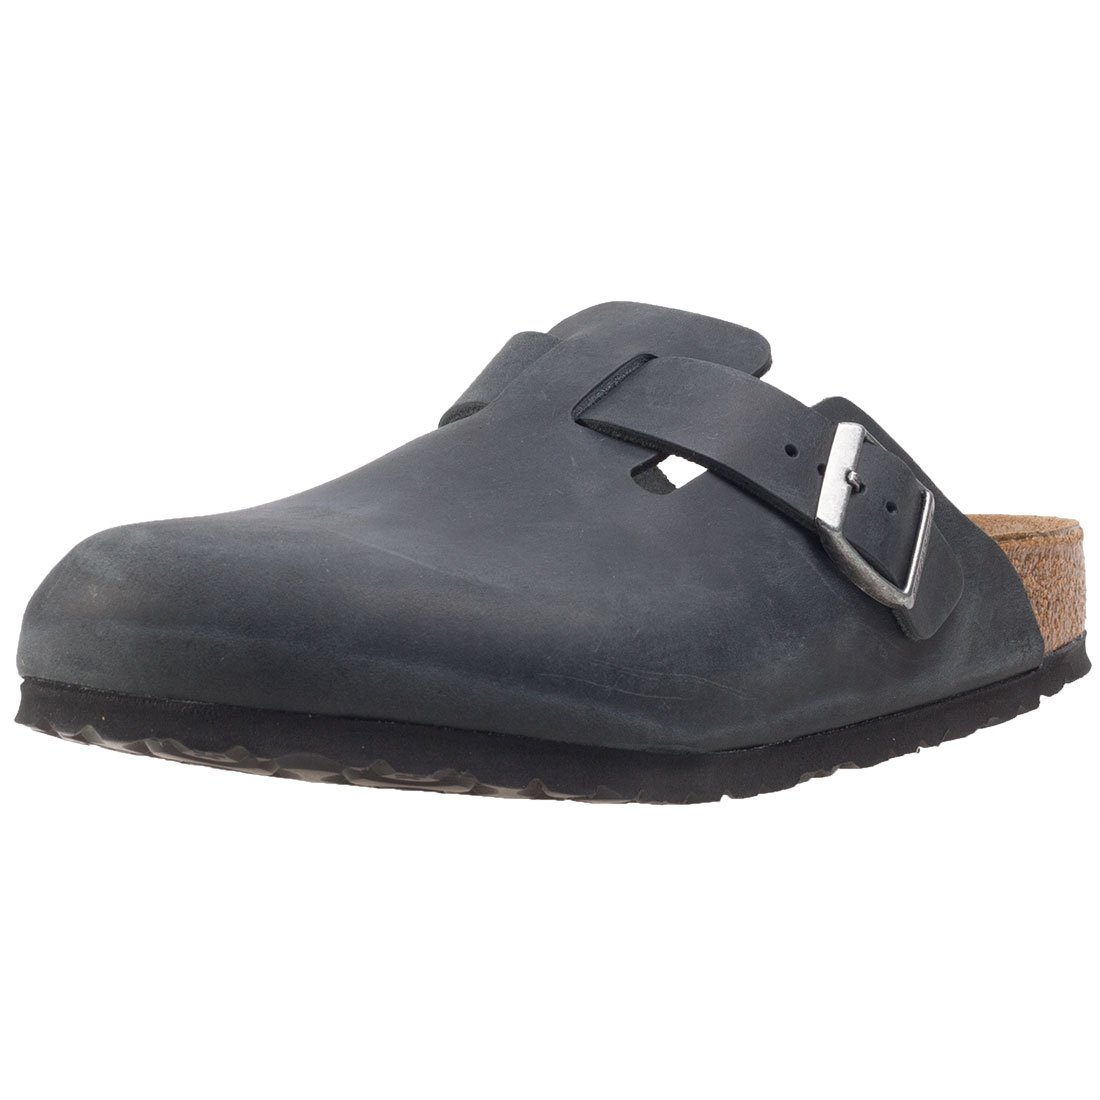 Birkenstock Boston Narrow Fit Unisex Sandals Black Anthracite - 39 EU by Birkenstock